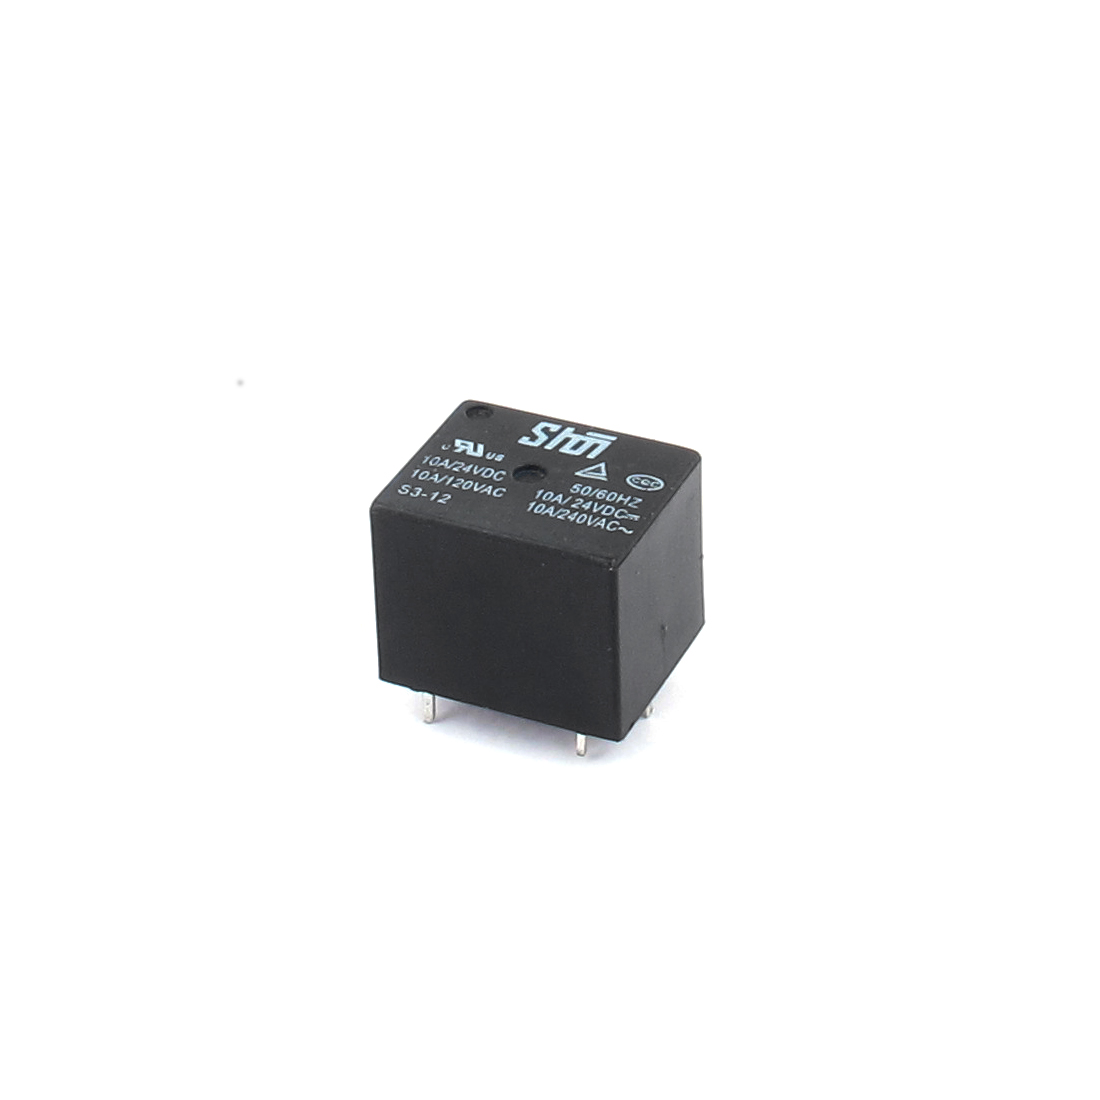 S3-12V DC 12V Coil Volt SPDT PCB General Purpose Power Relay